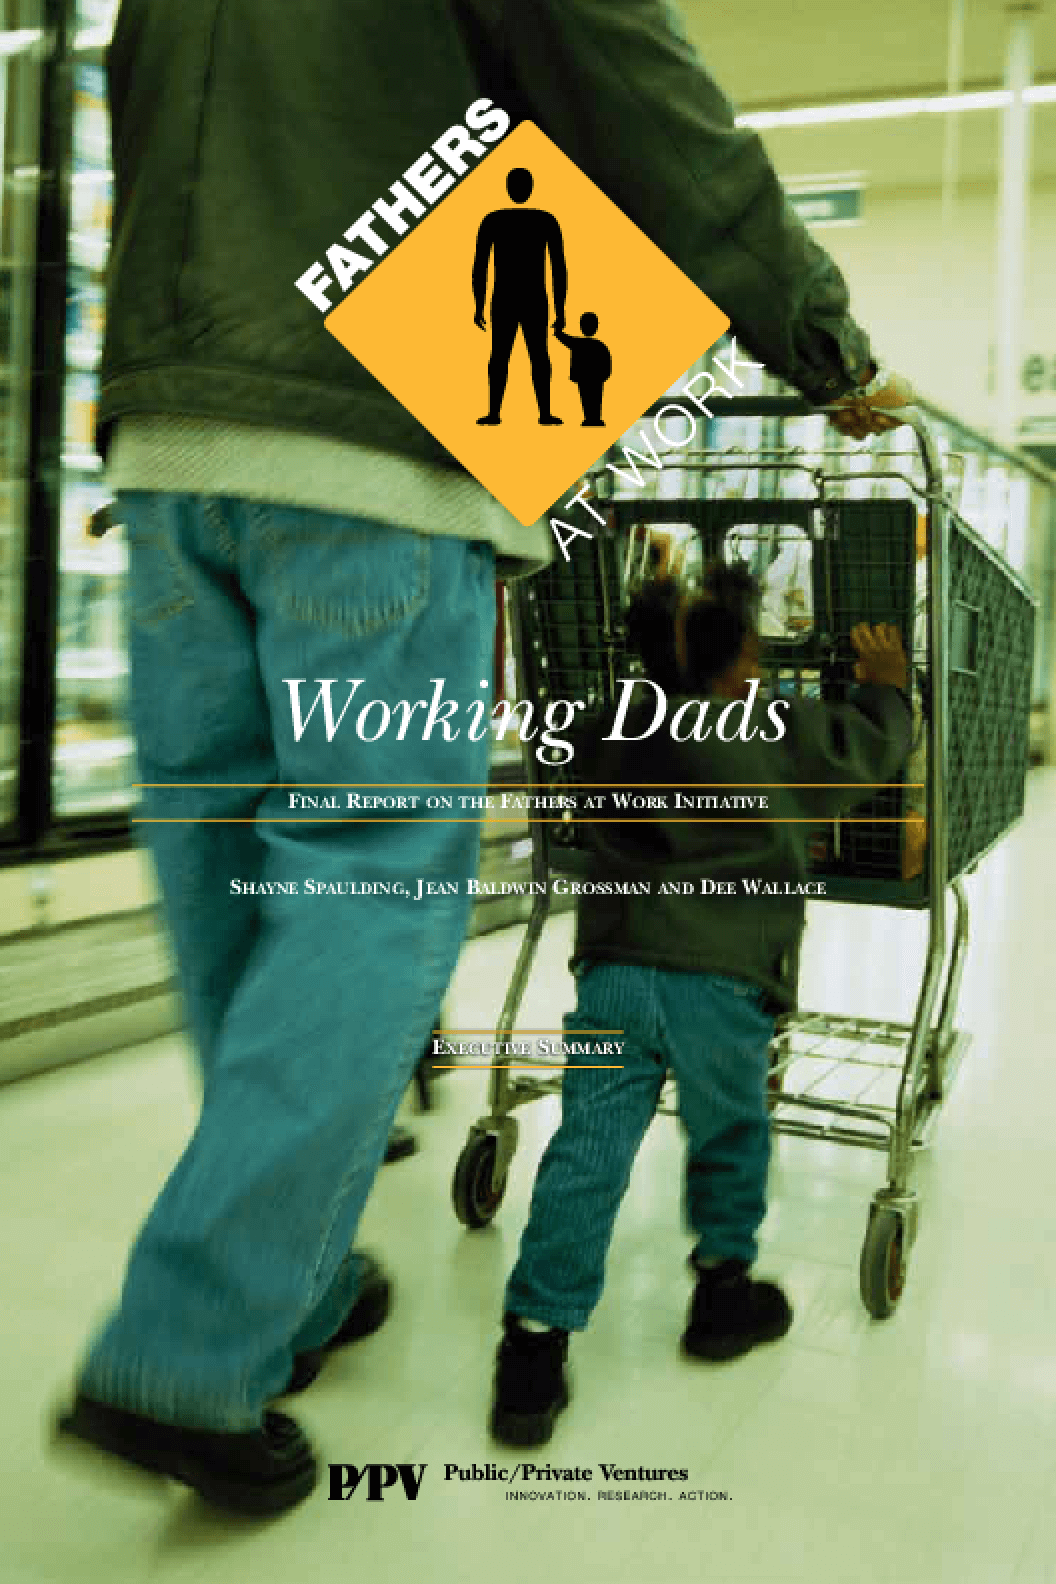 Working Dads: Final Report on the Fathers at Work Initiative Executive Summary